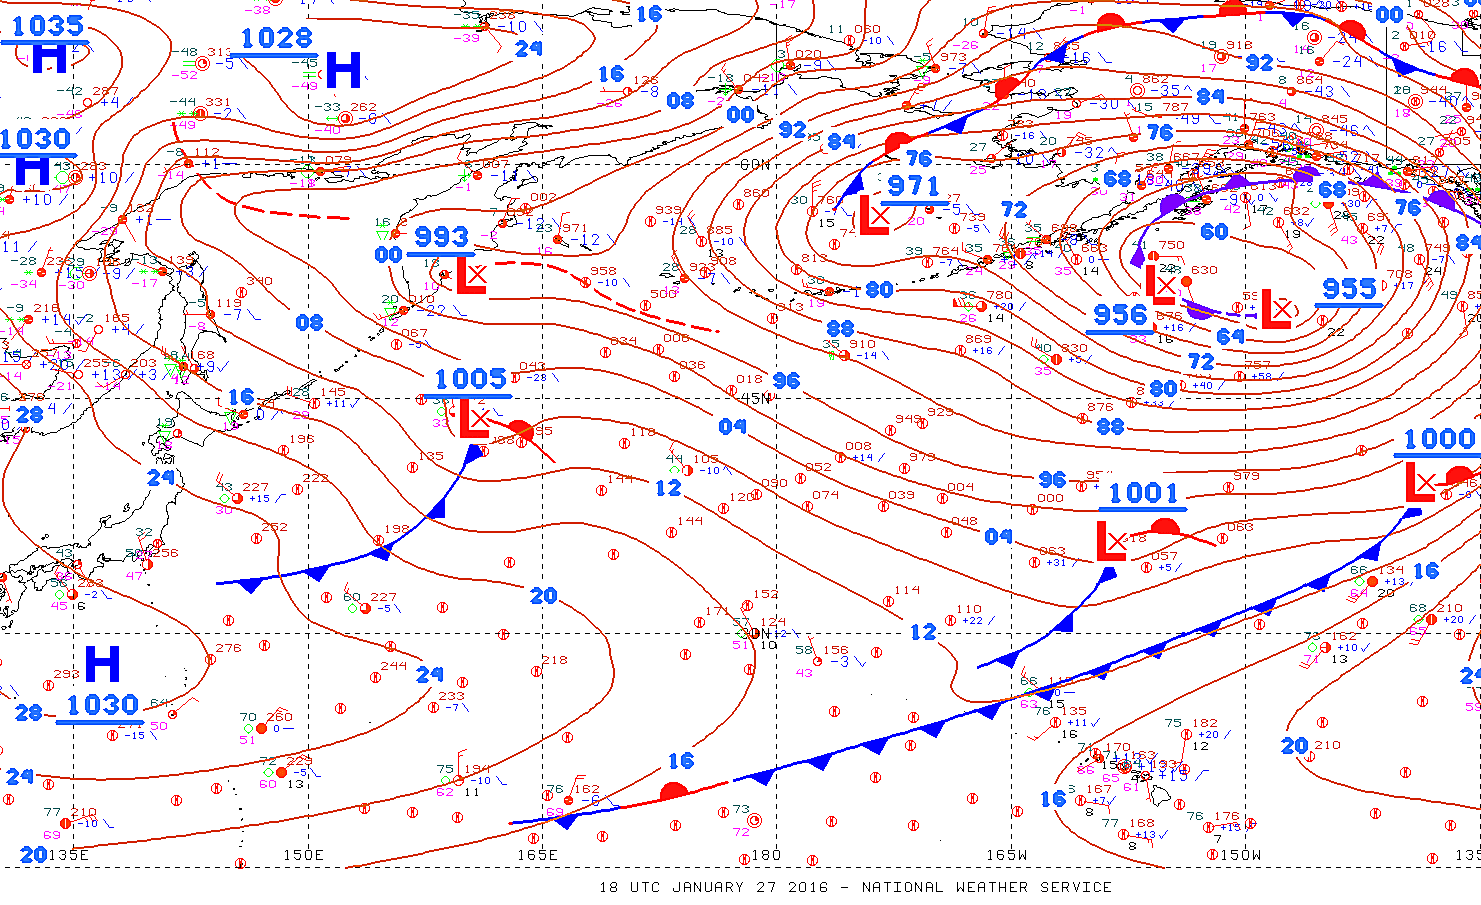 How to read symbols and colors on weather maps buycottarizona